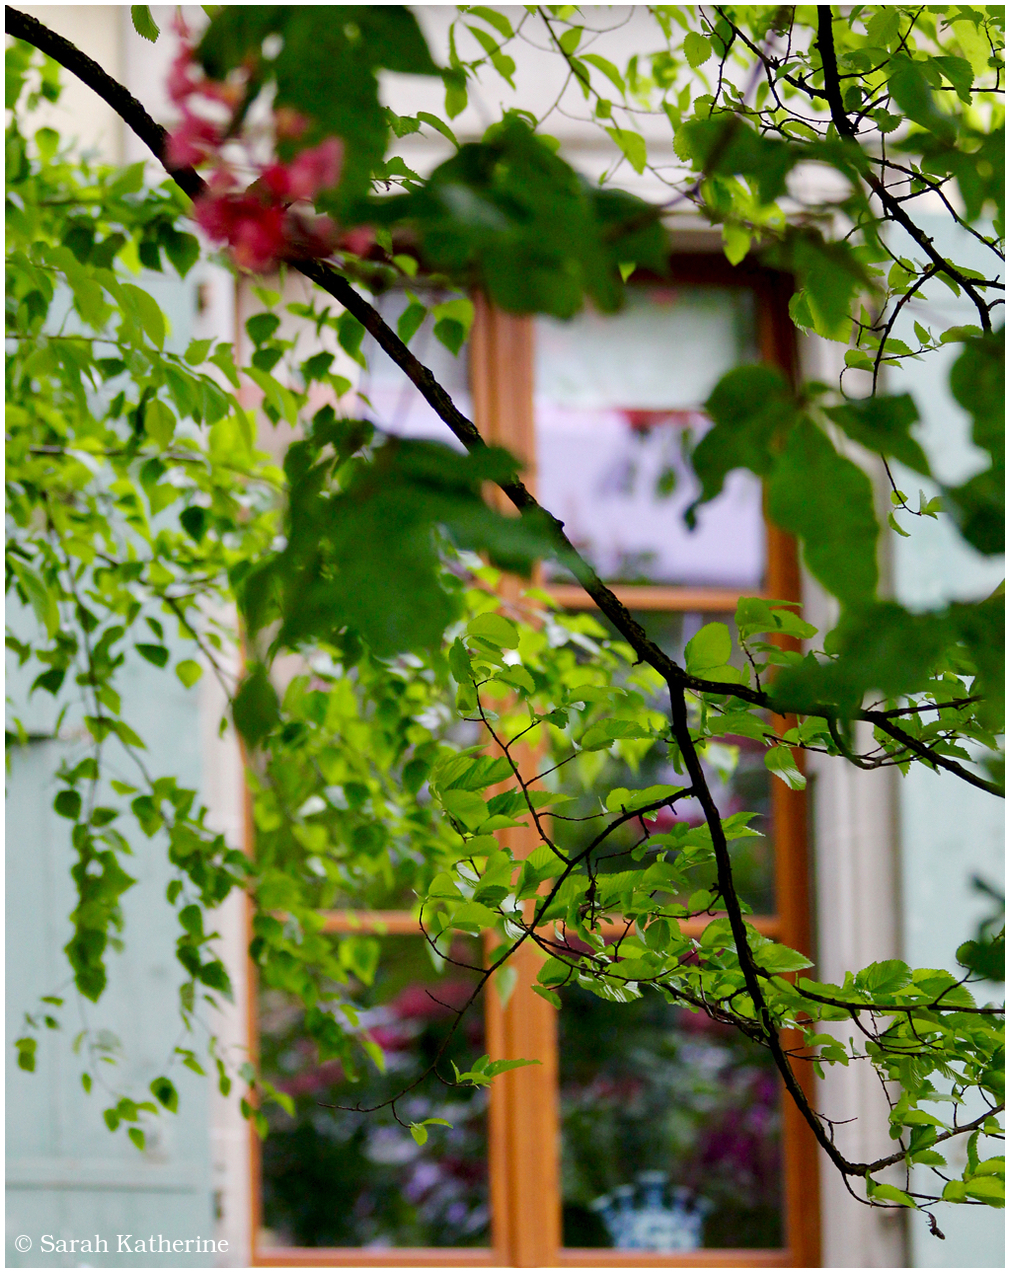 window, sprig, tree, blossom